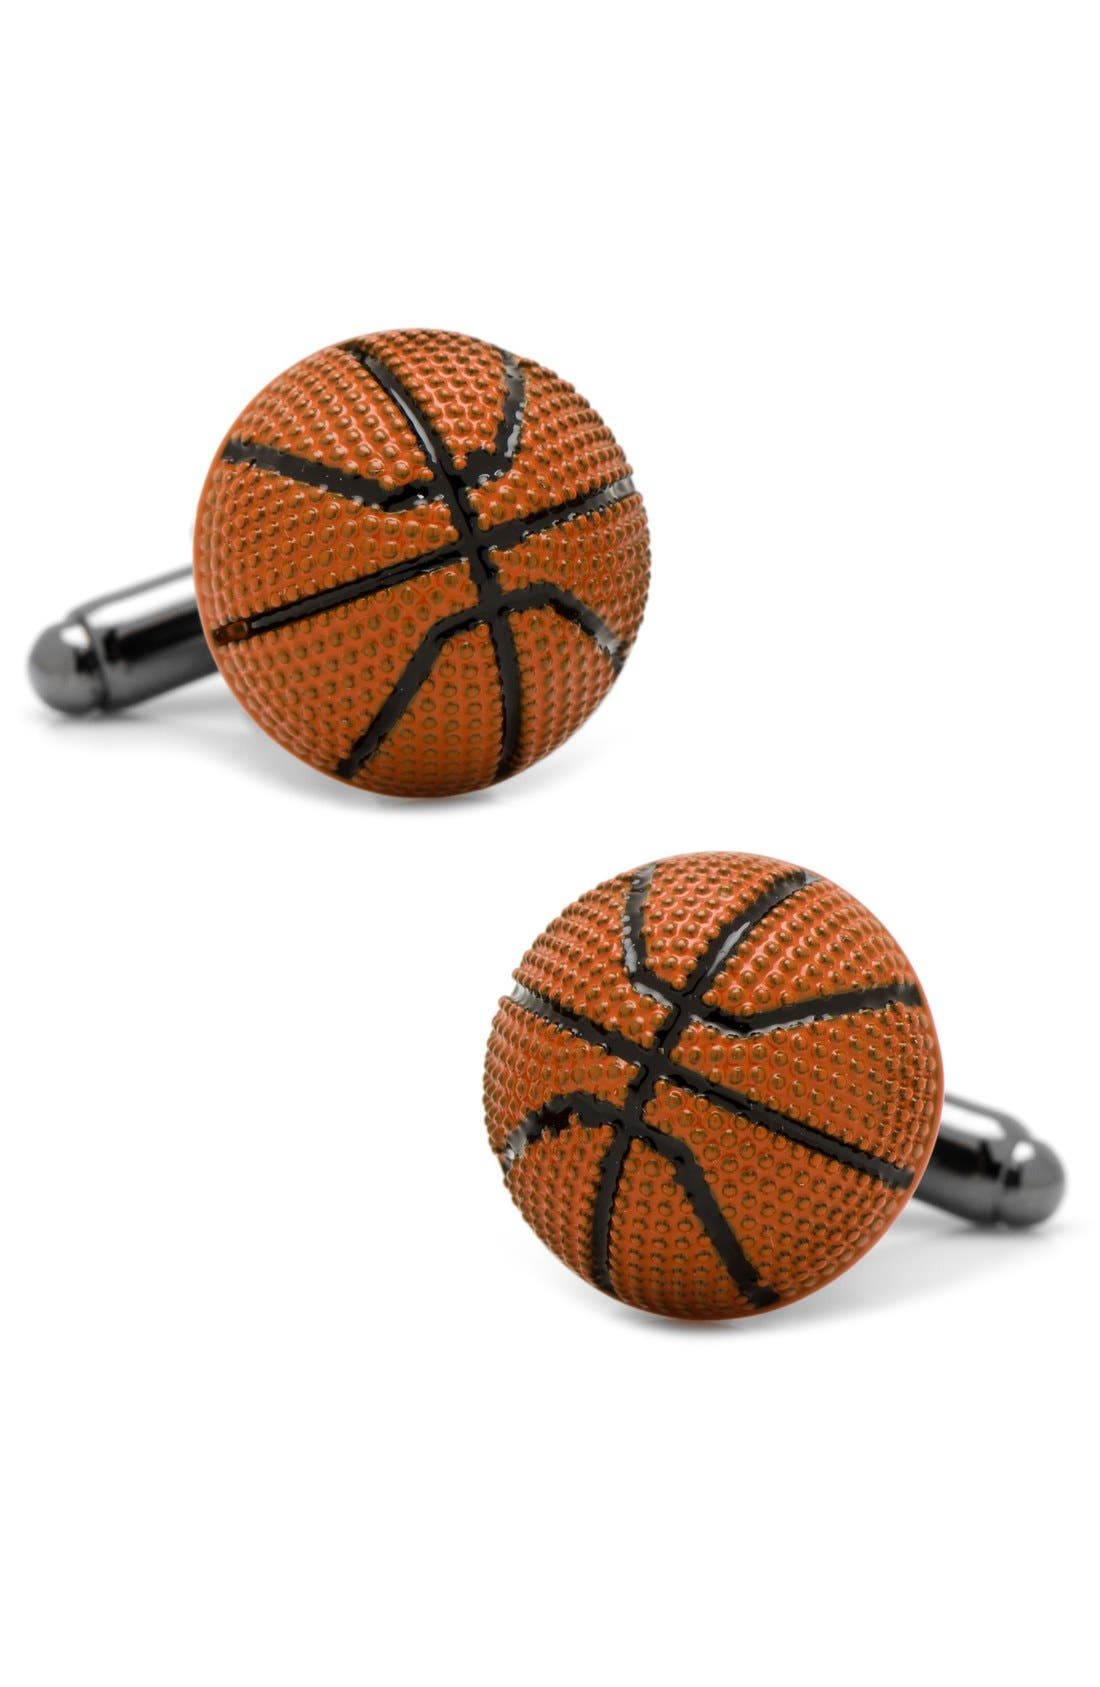 CUFFLINKS, INC. Basketball Cuff Links